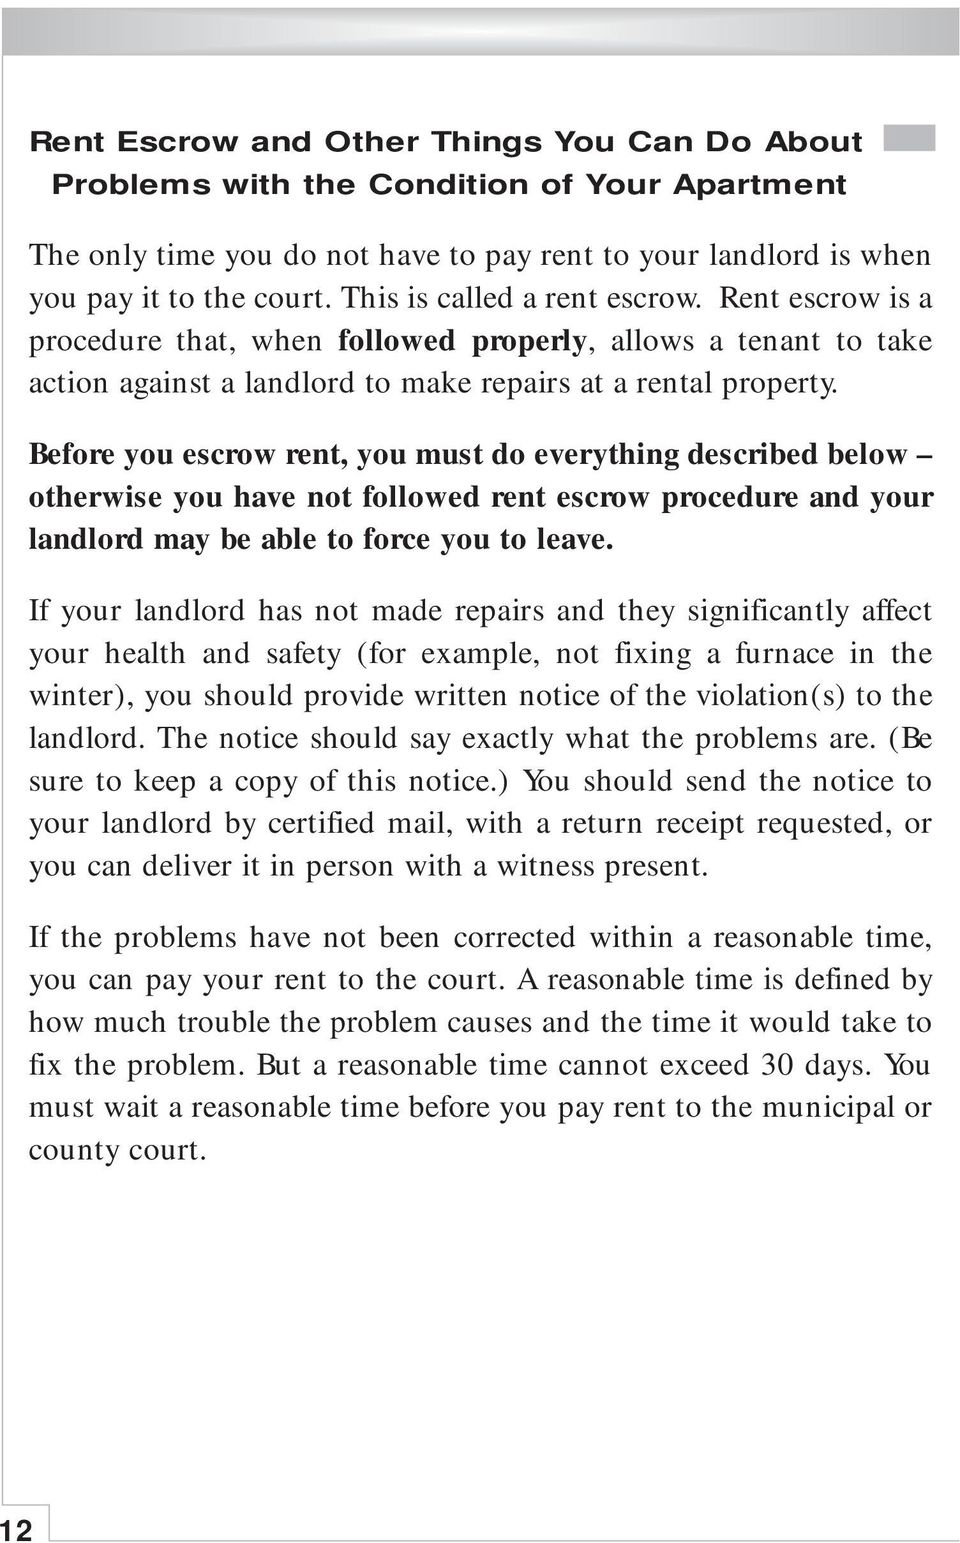 Before you escrow rent, you must do everything described below otherwise you have not followed rent escrow procedure and your landlord may be able to force you to leave.